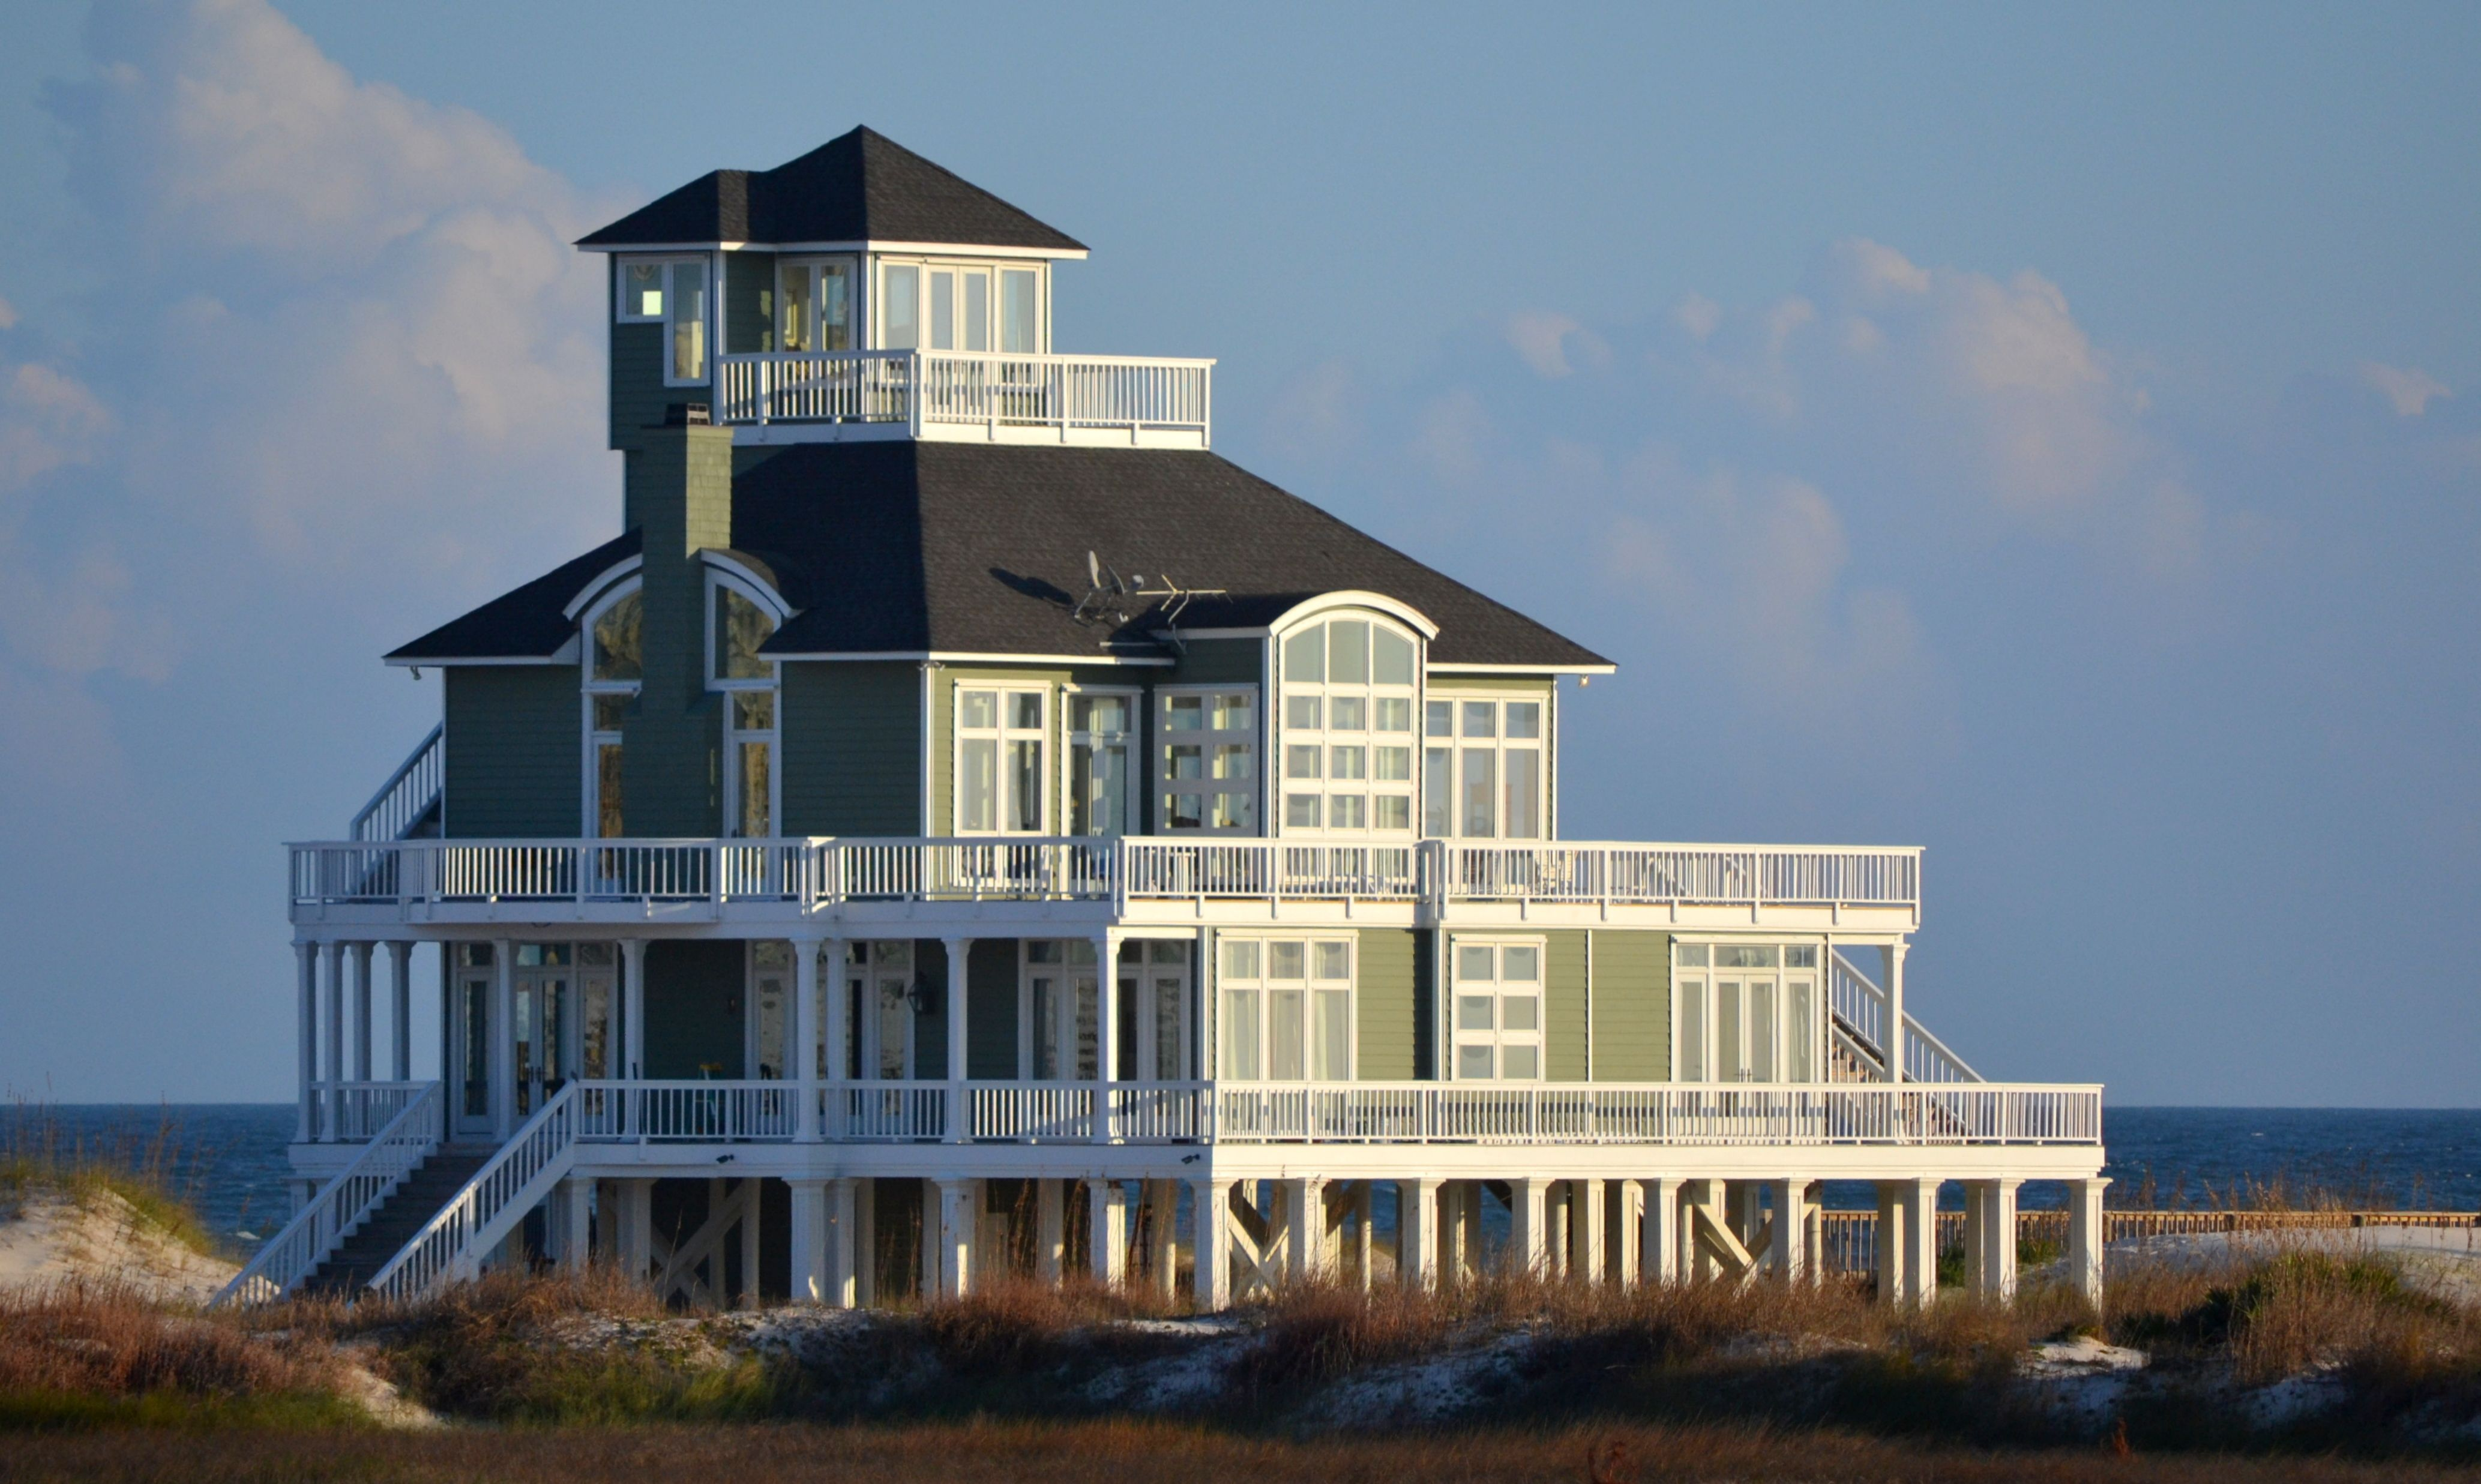 pin vacation in rosa nantucket rentals way vermillionaire watercolor santa cottages destin fl beach vermillion